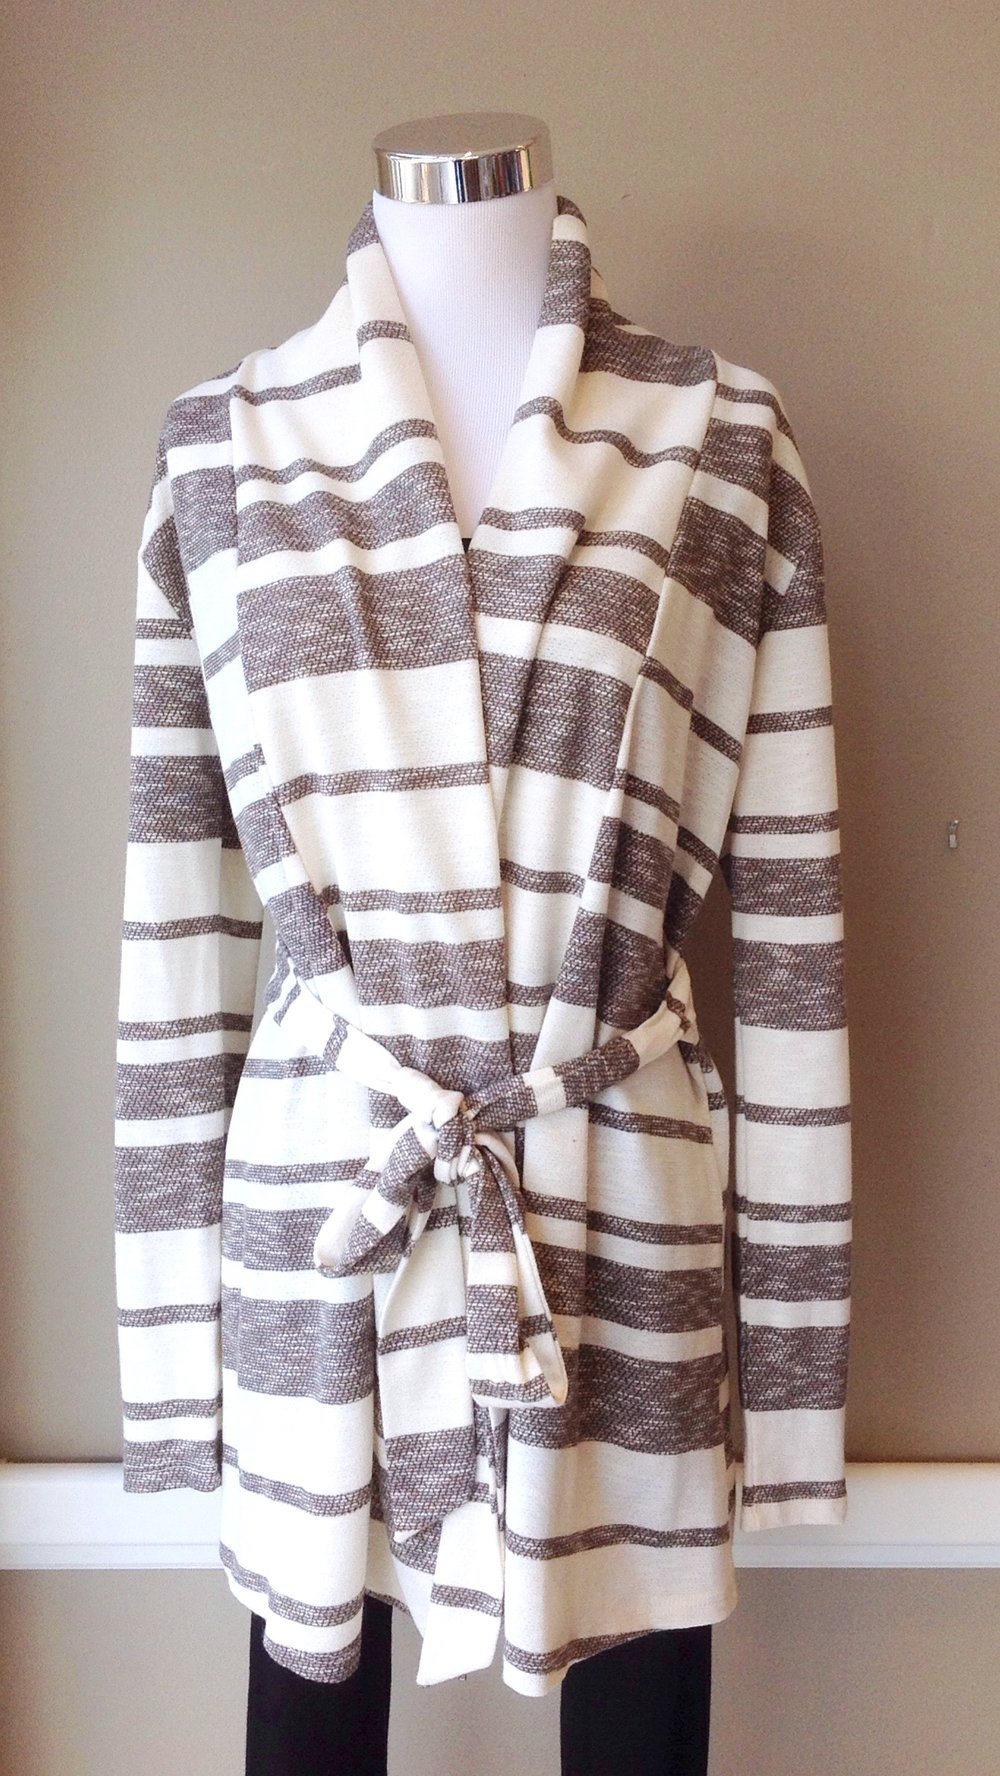 Striped knit cardigan with self tie in grey/off-white, $38